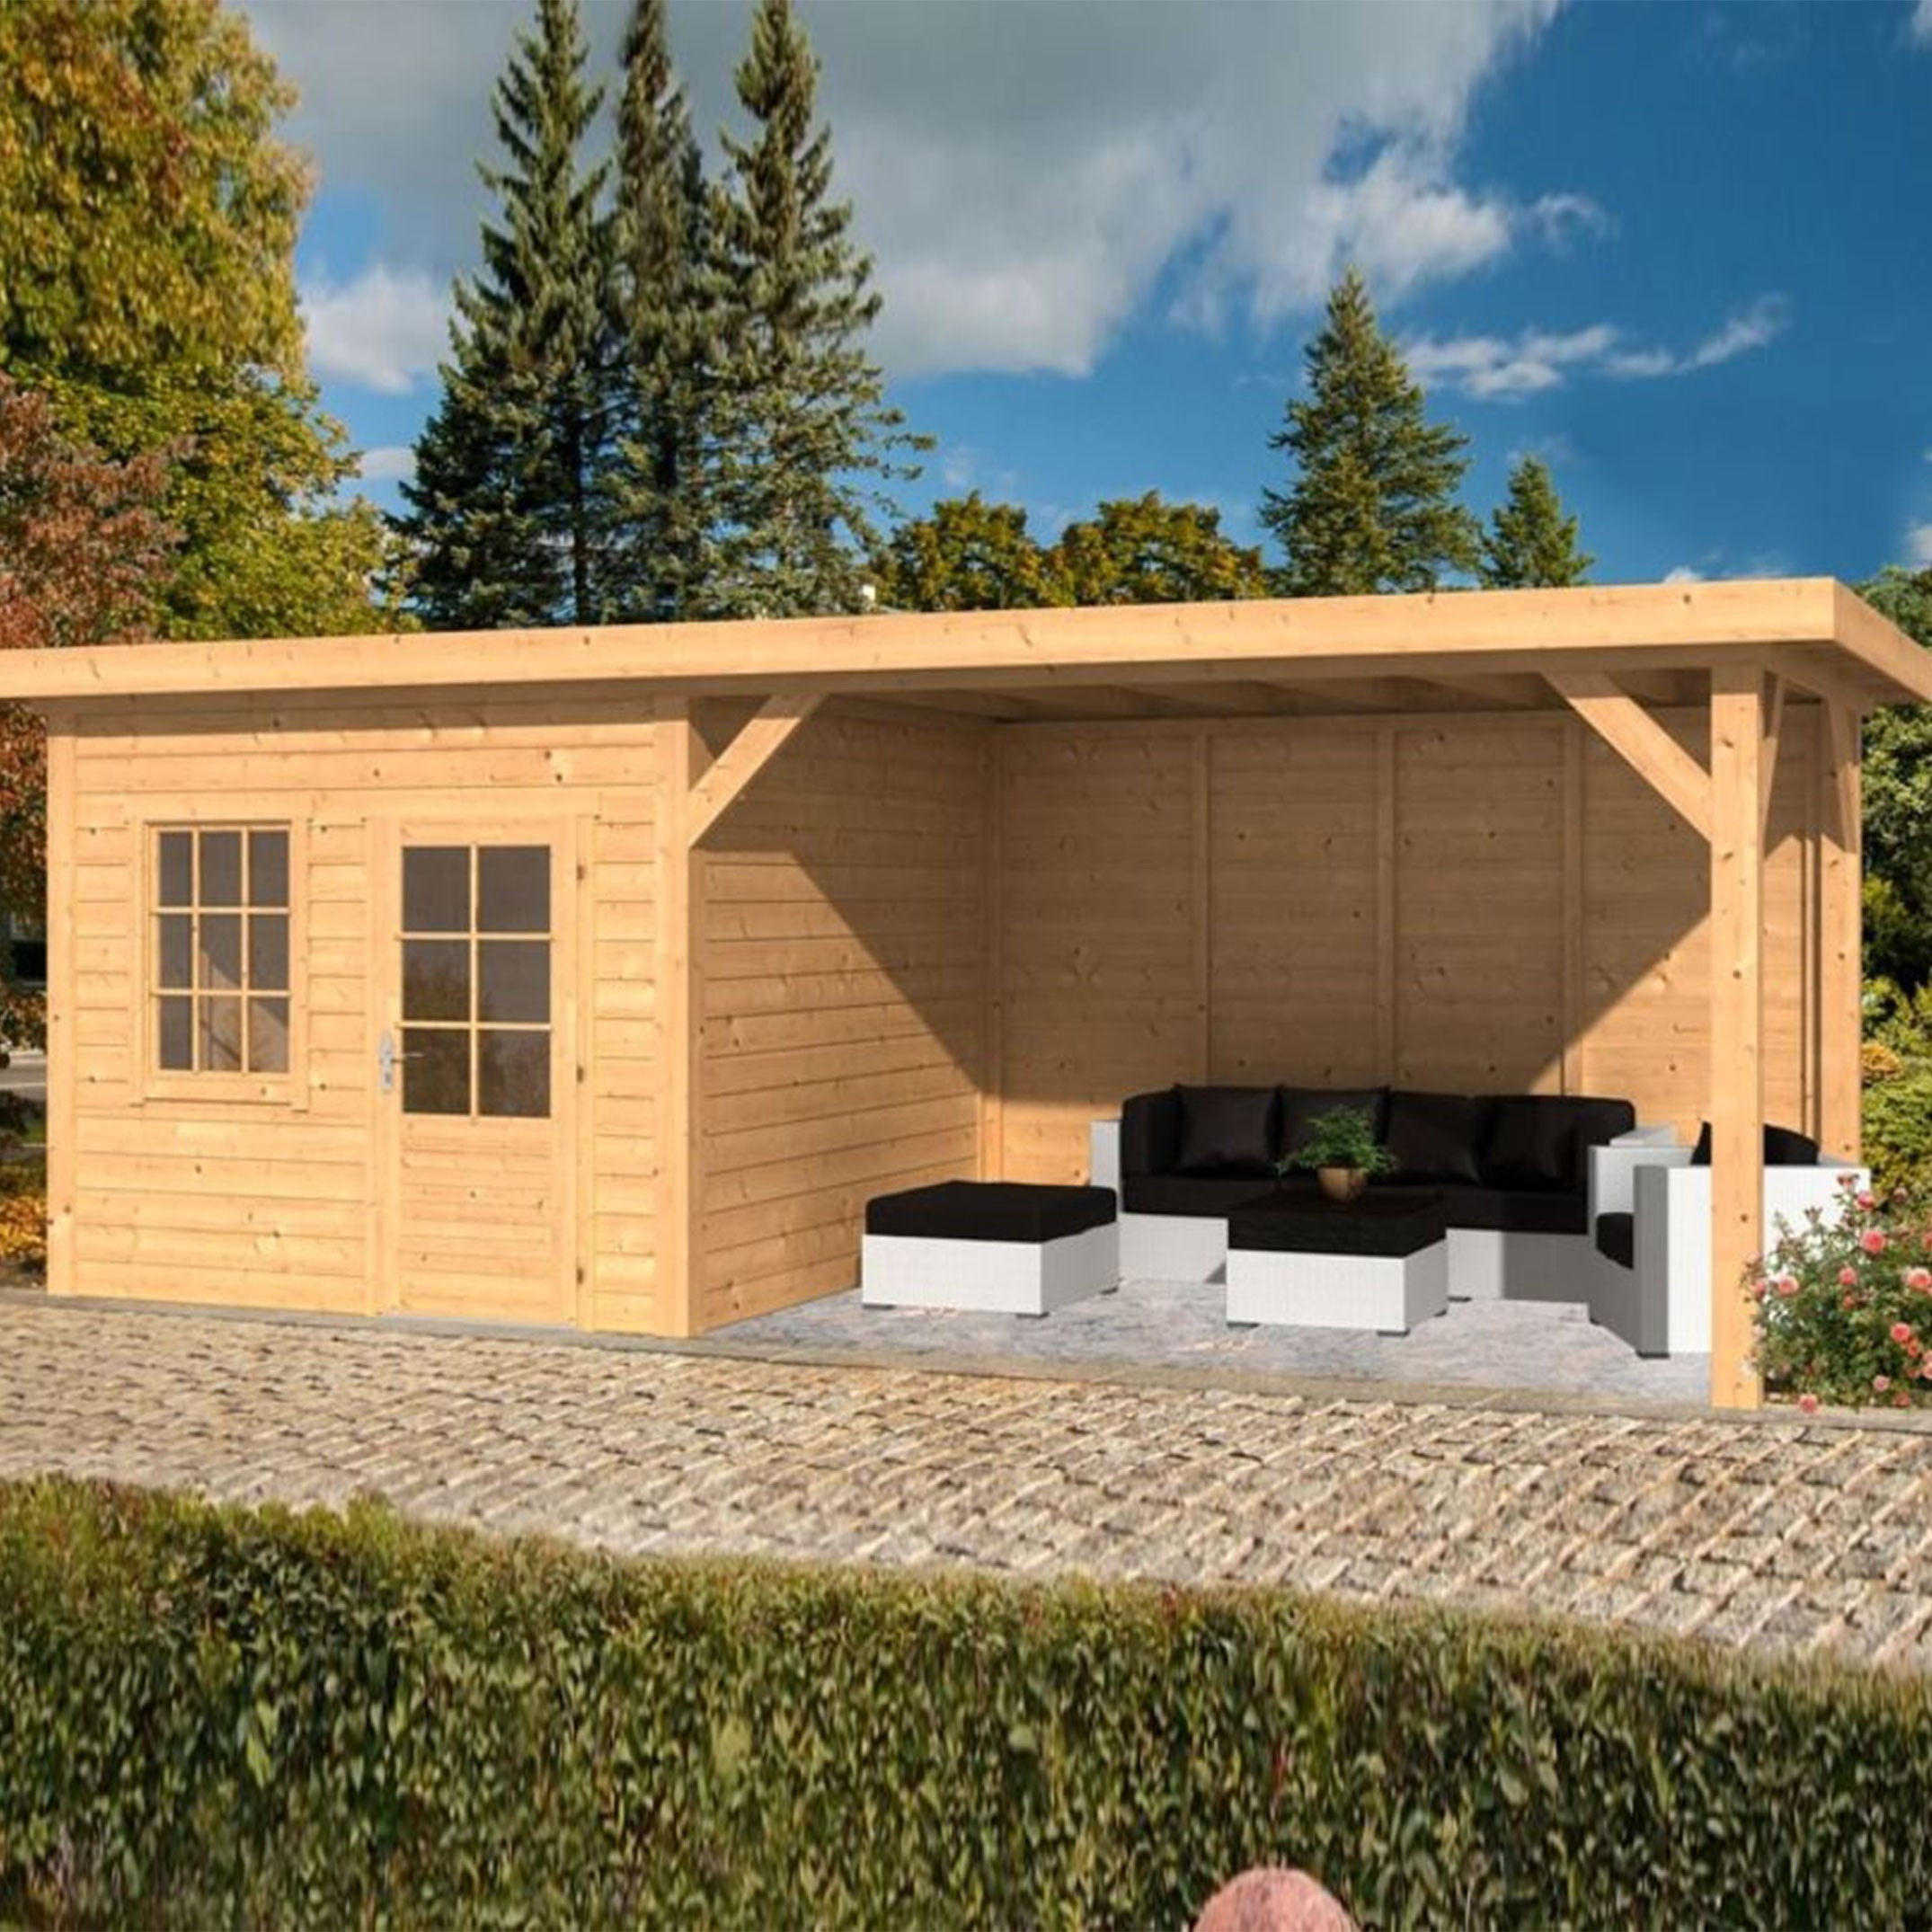 Garden shed Holten larch- Douglas fir siding - untreated - Tuindeco